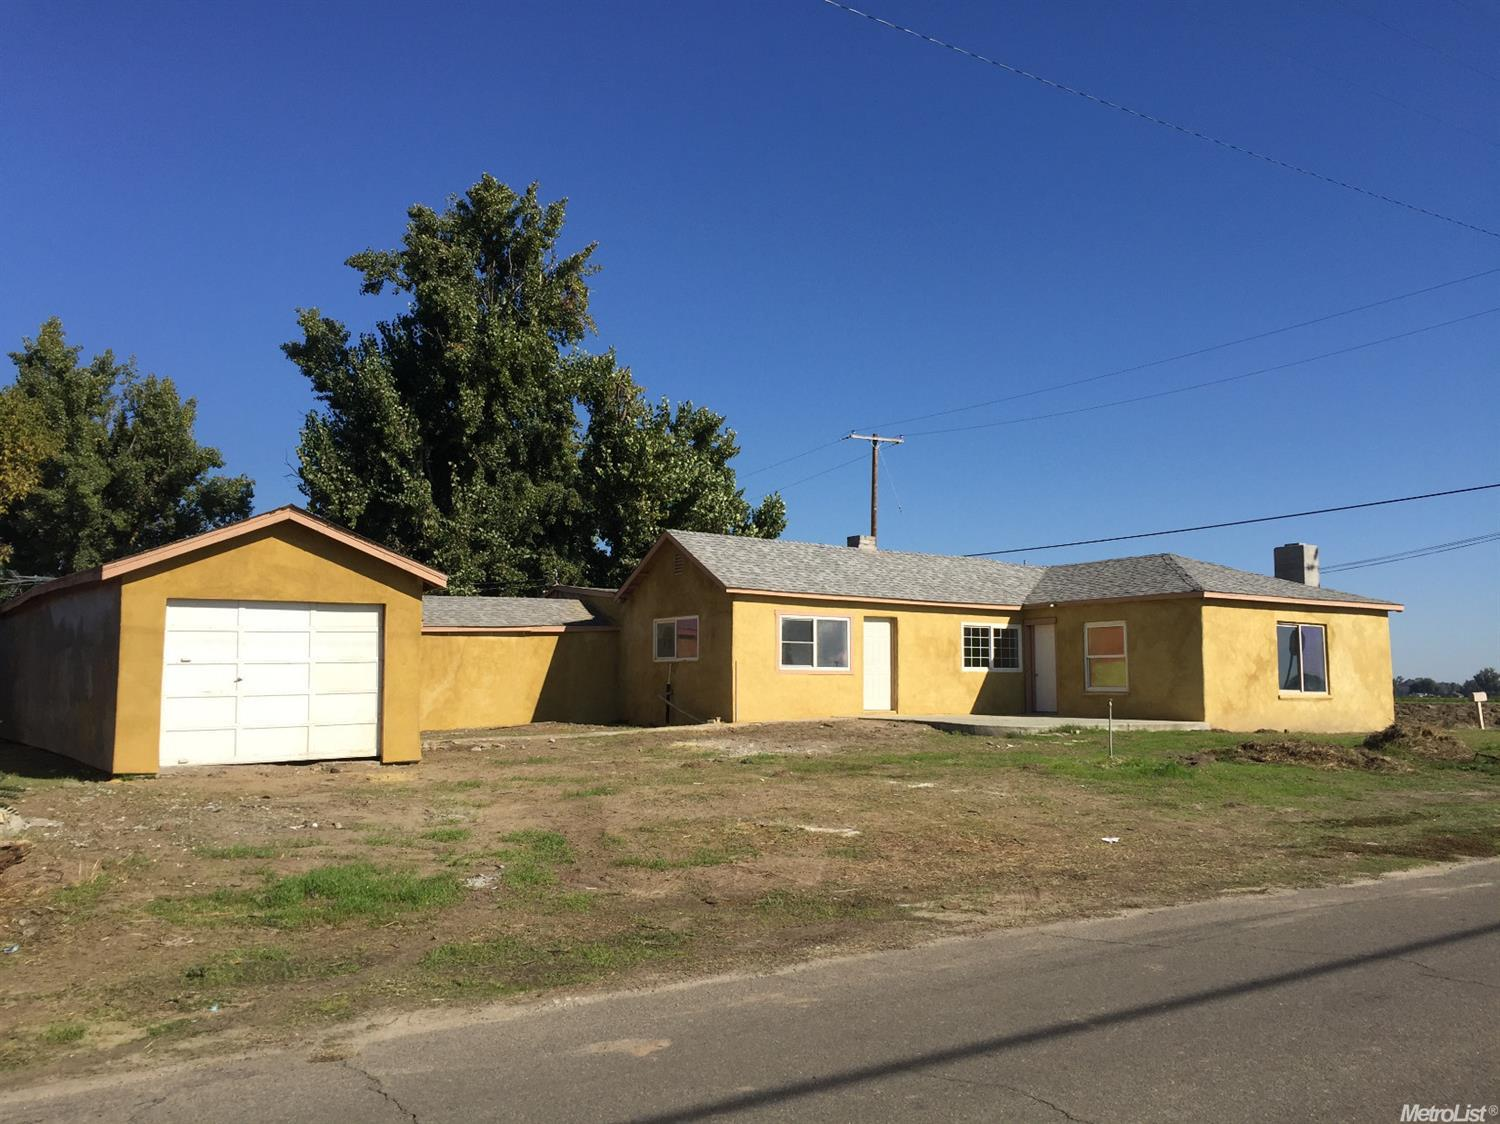 7831 Foy Ave, Ceres, CA 95307